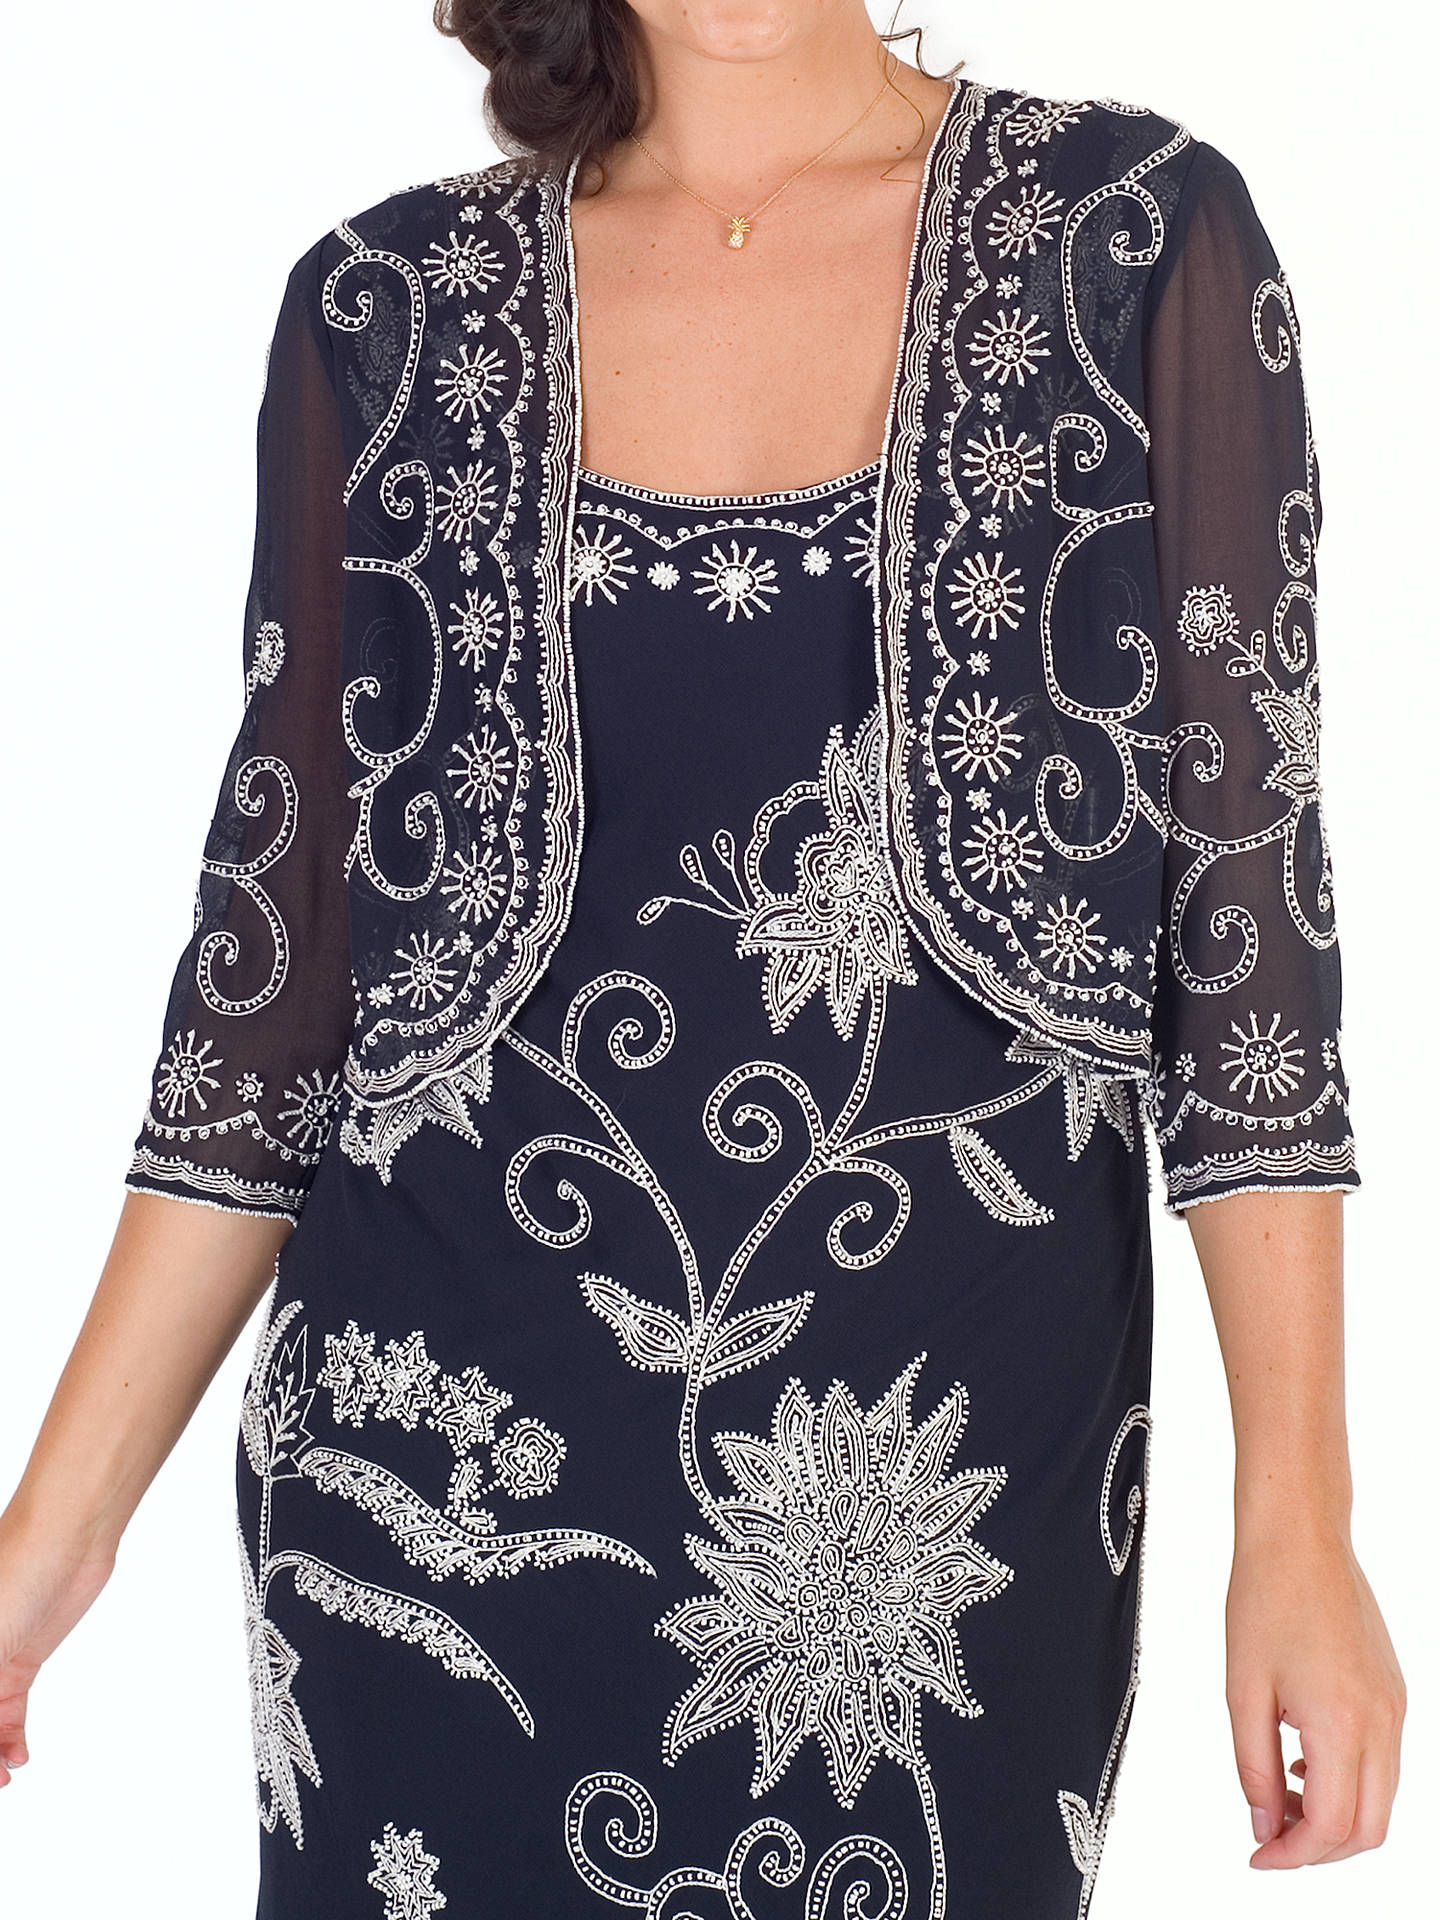 BuyChesca Embroidered Beaded Bolero, Navy/Ivory, 12 Online at johnlewis.com